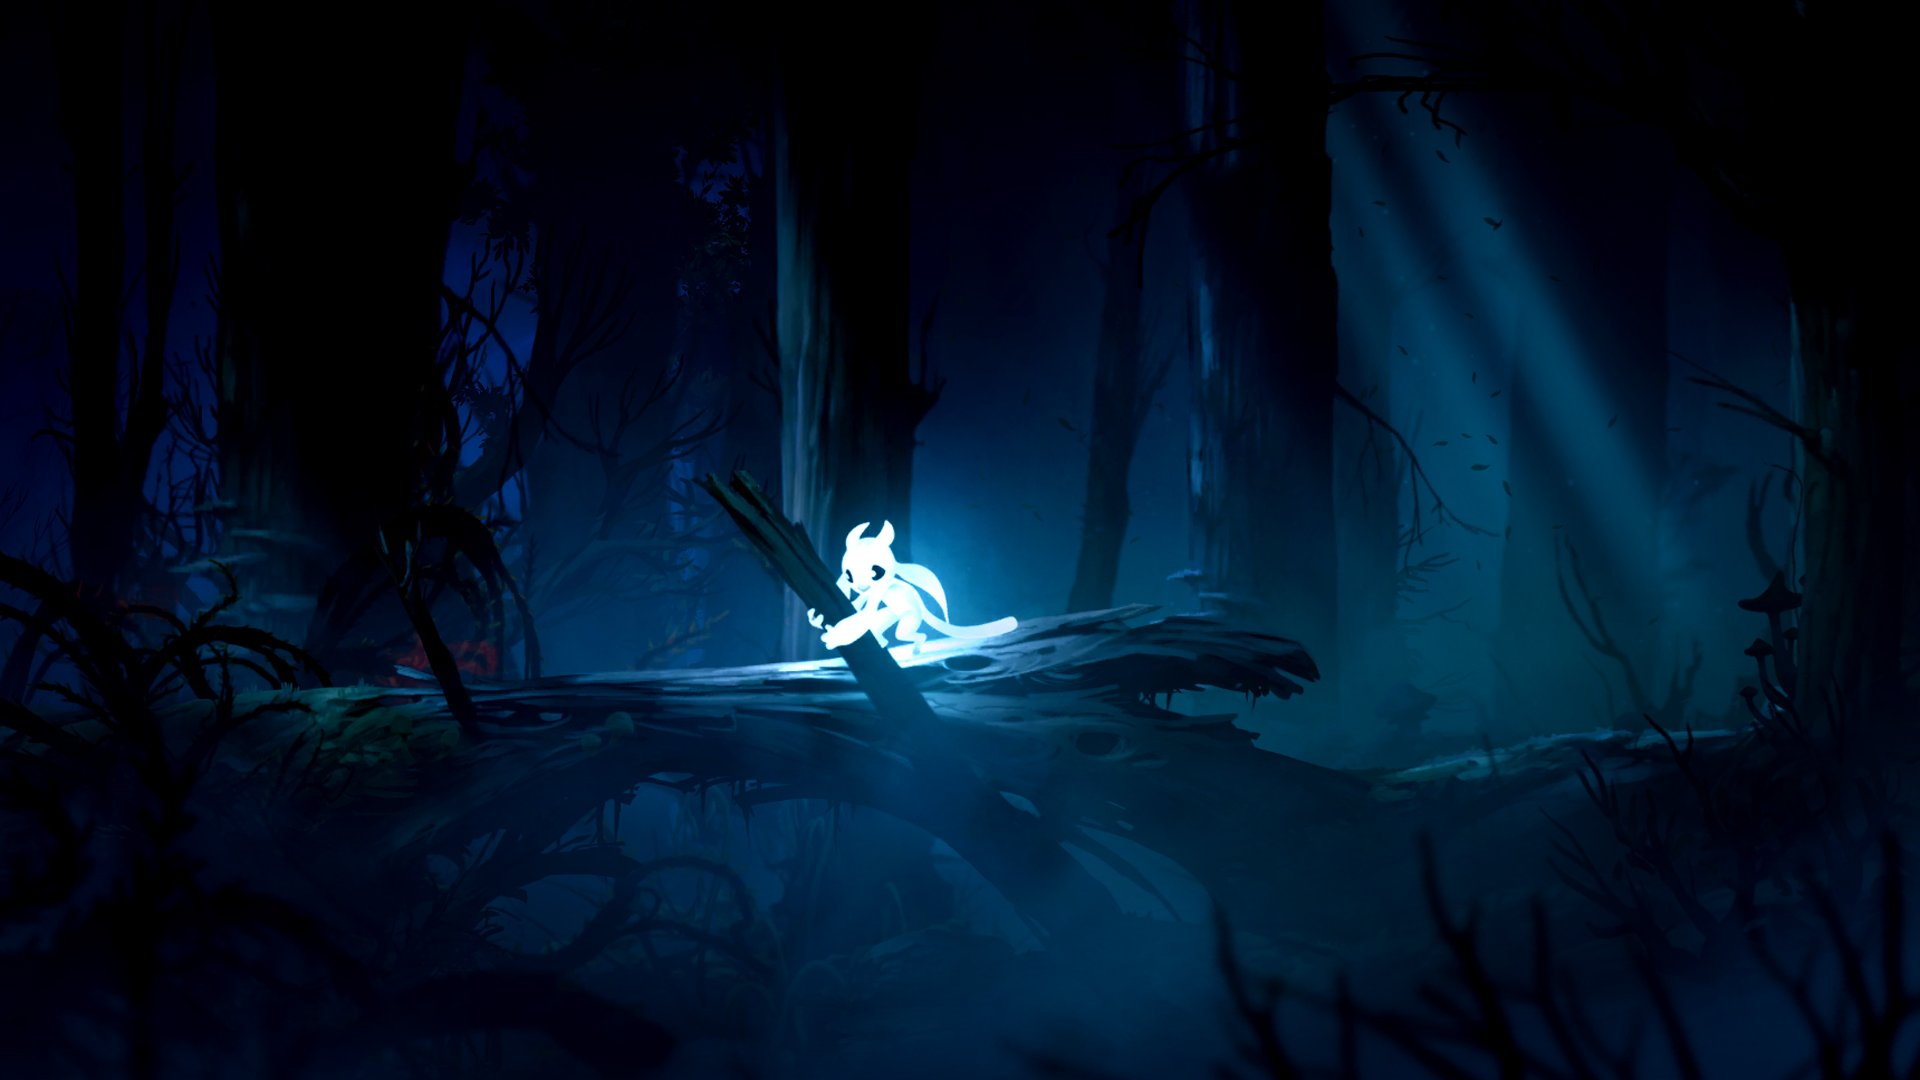 Ori Character Ori And The Blind Forest Hd Wallpaper 2180421